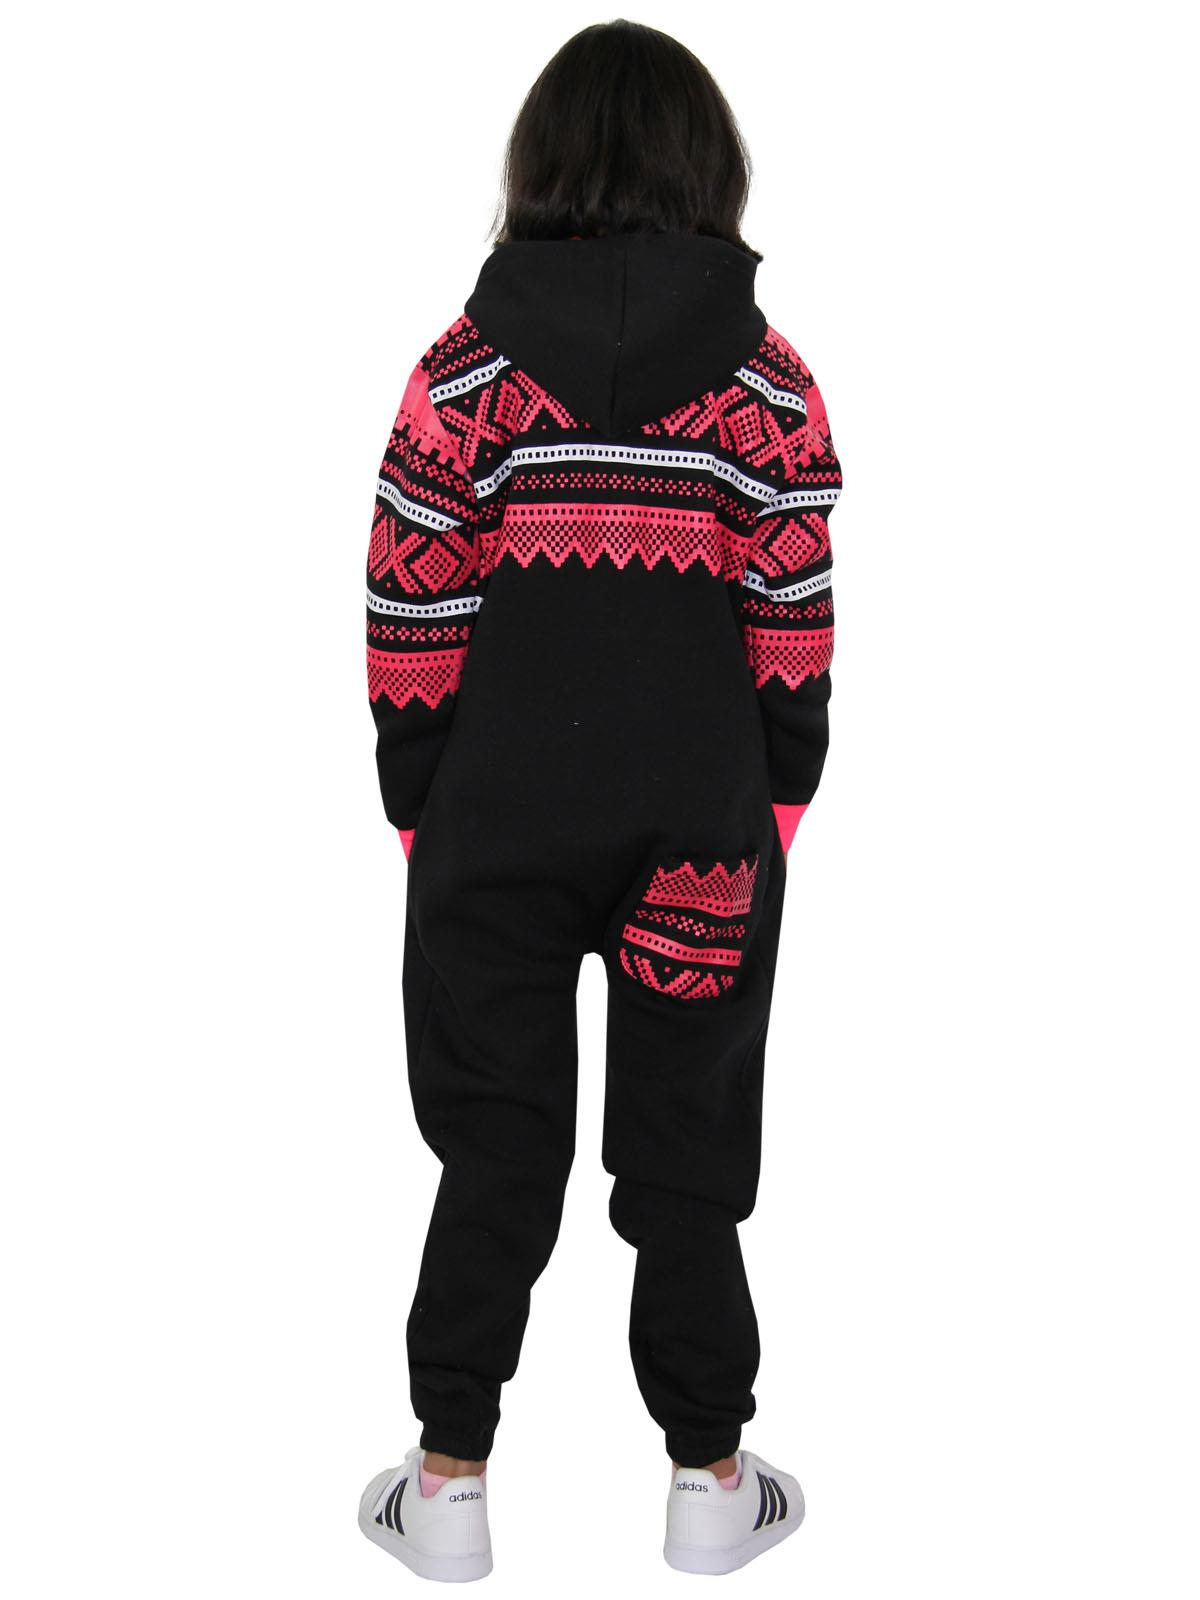 A2Z 4 Kids/® Kids Boys Girls Fleece Onesie Designers Camouflage Charcoal Print All in One Jumpsuit Playsuit New Age 5 6 7 8 9 10 11 12 13 Years